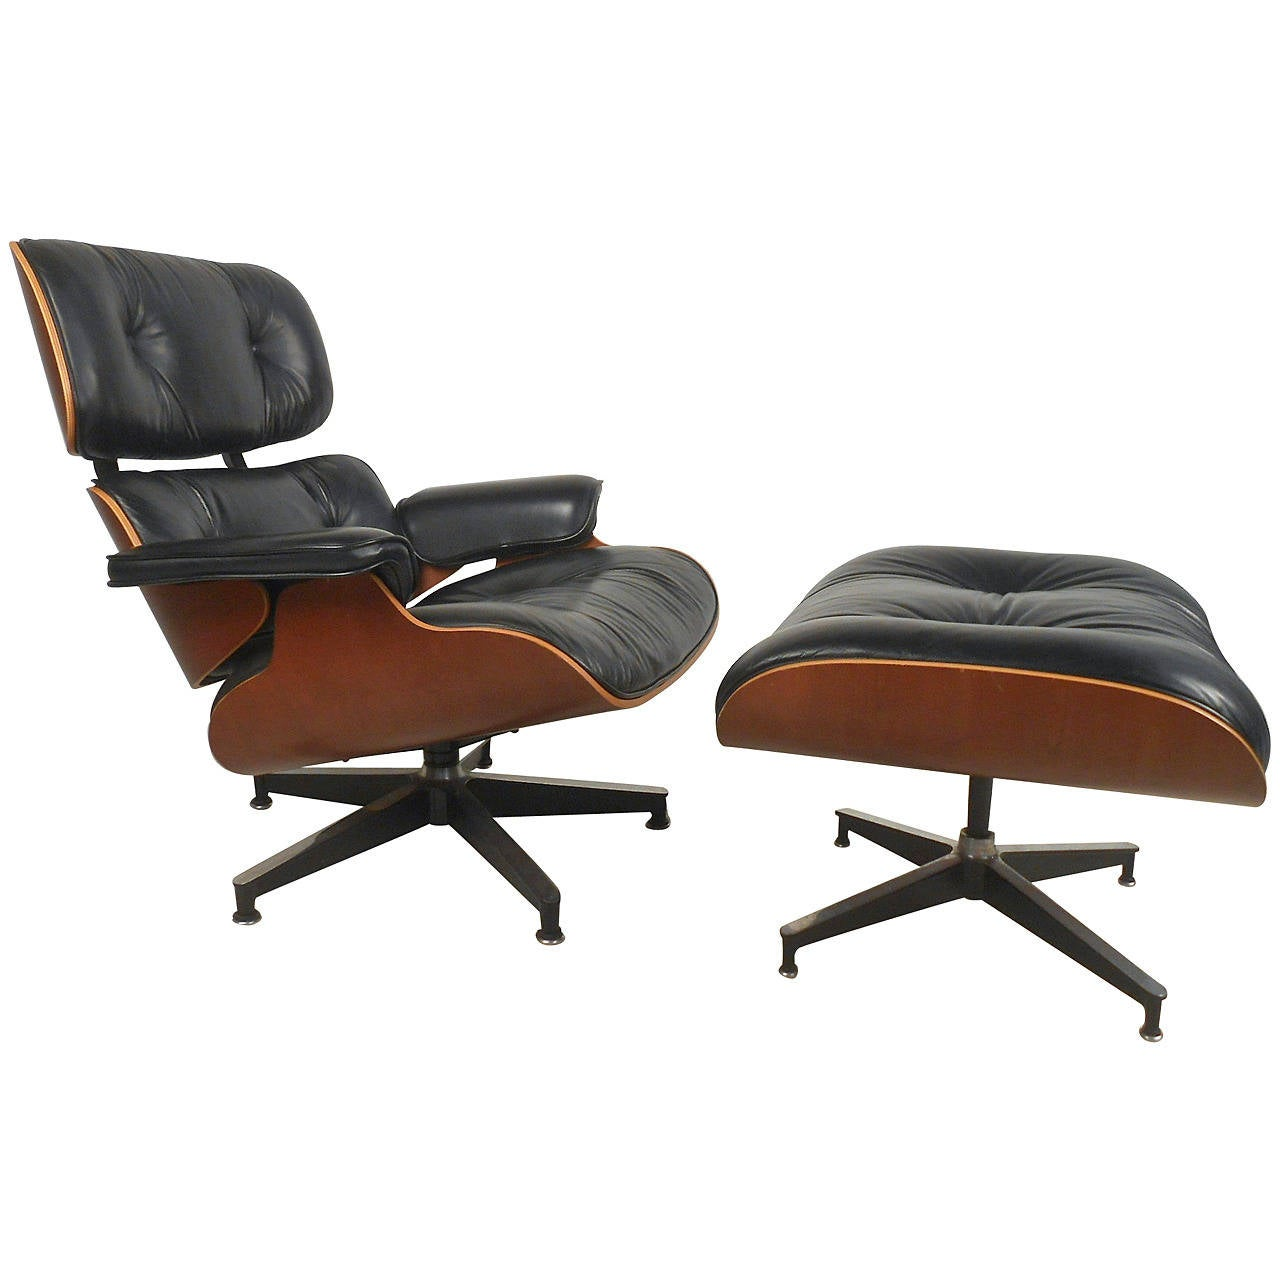 Herman miller 670 swivel lounge chair with ottoman at 1stdibs - Herman miller lounge chair and ottoman ...